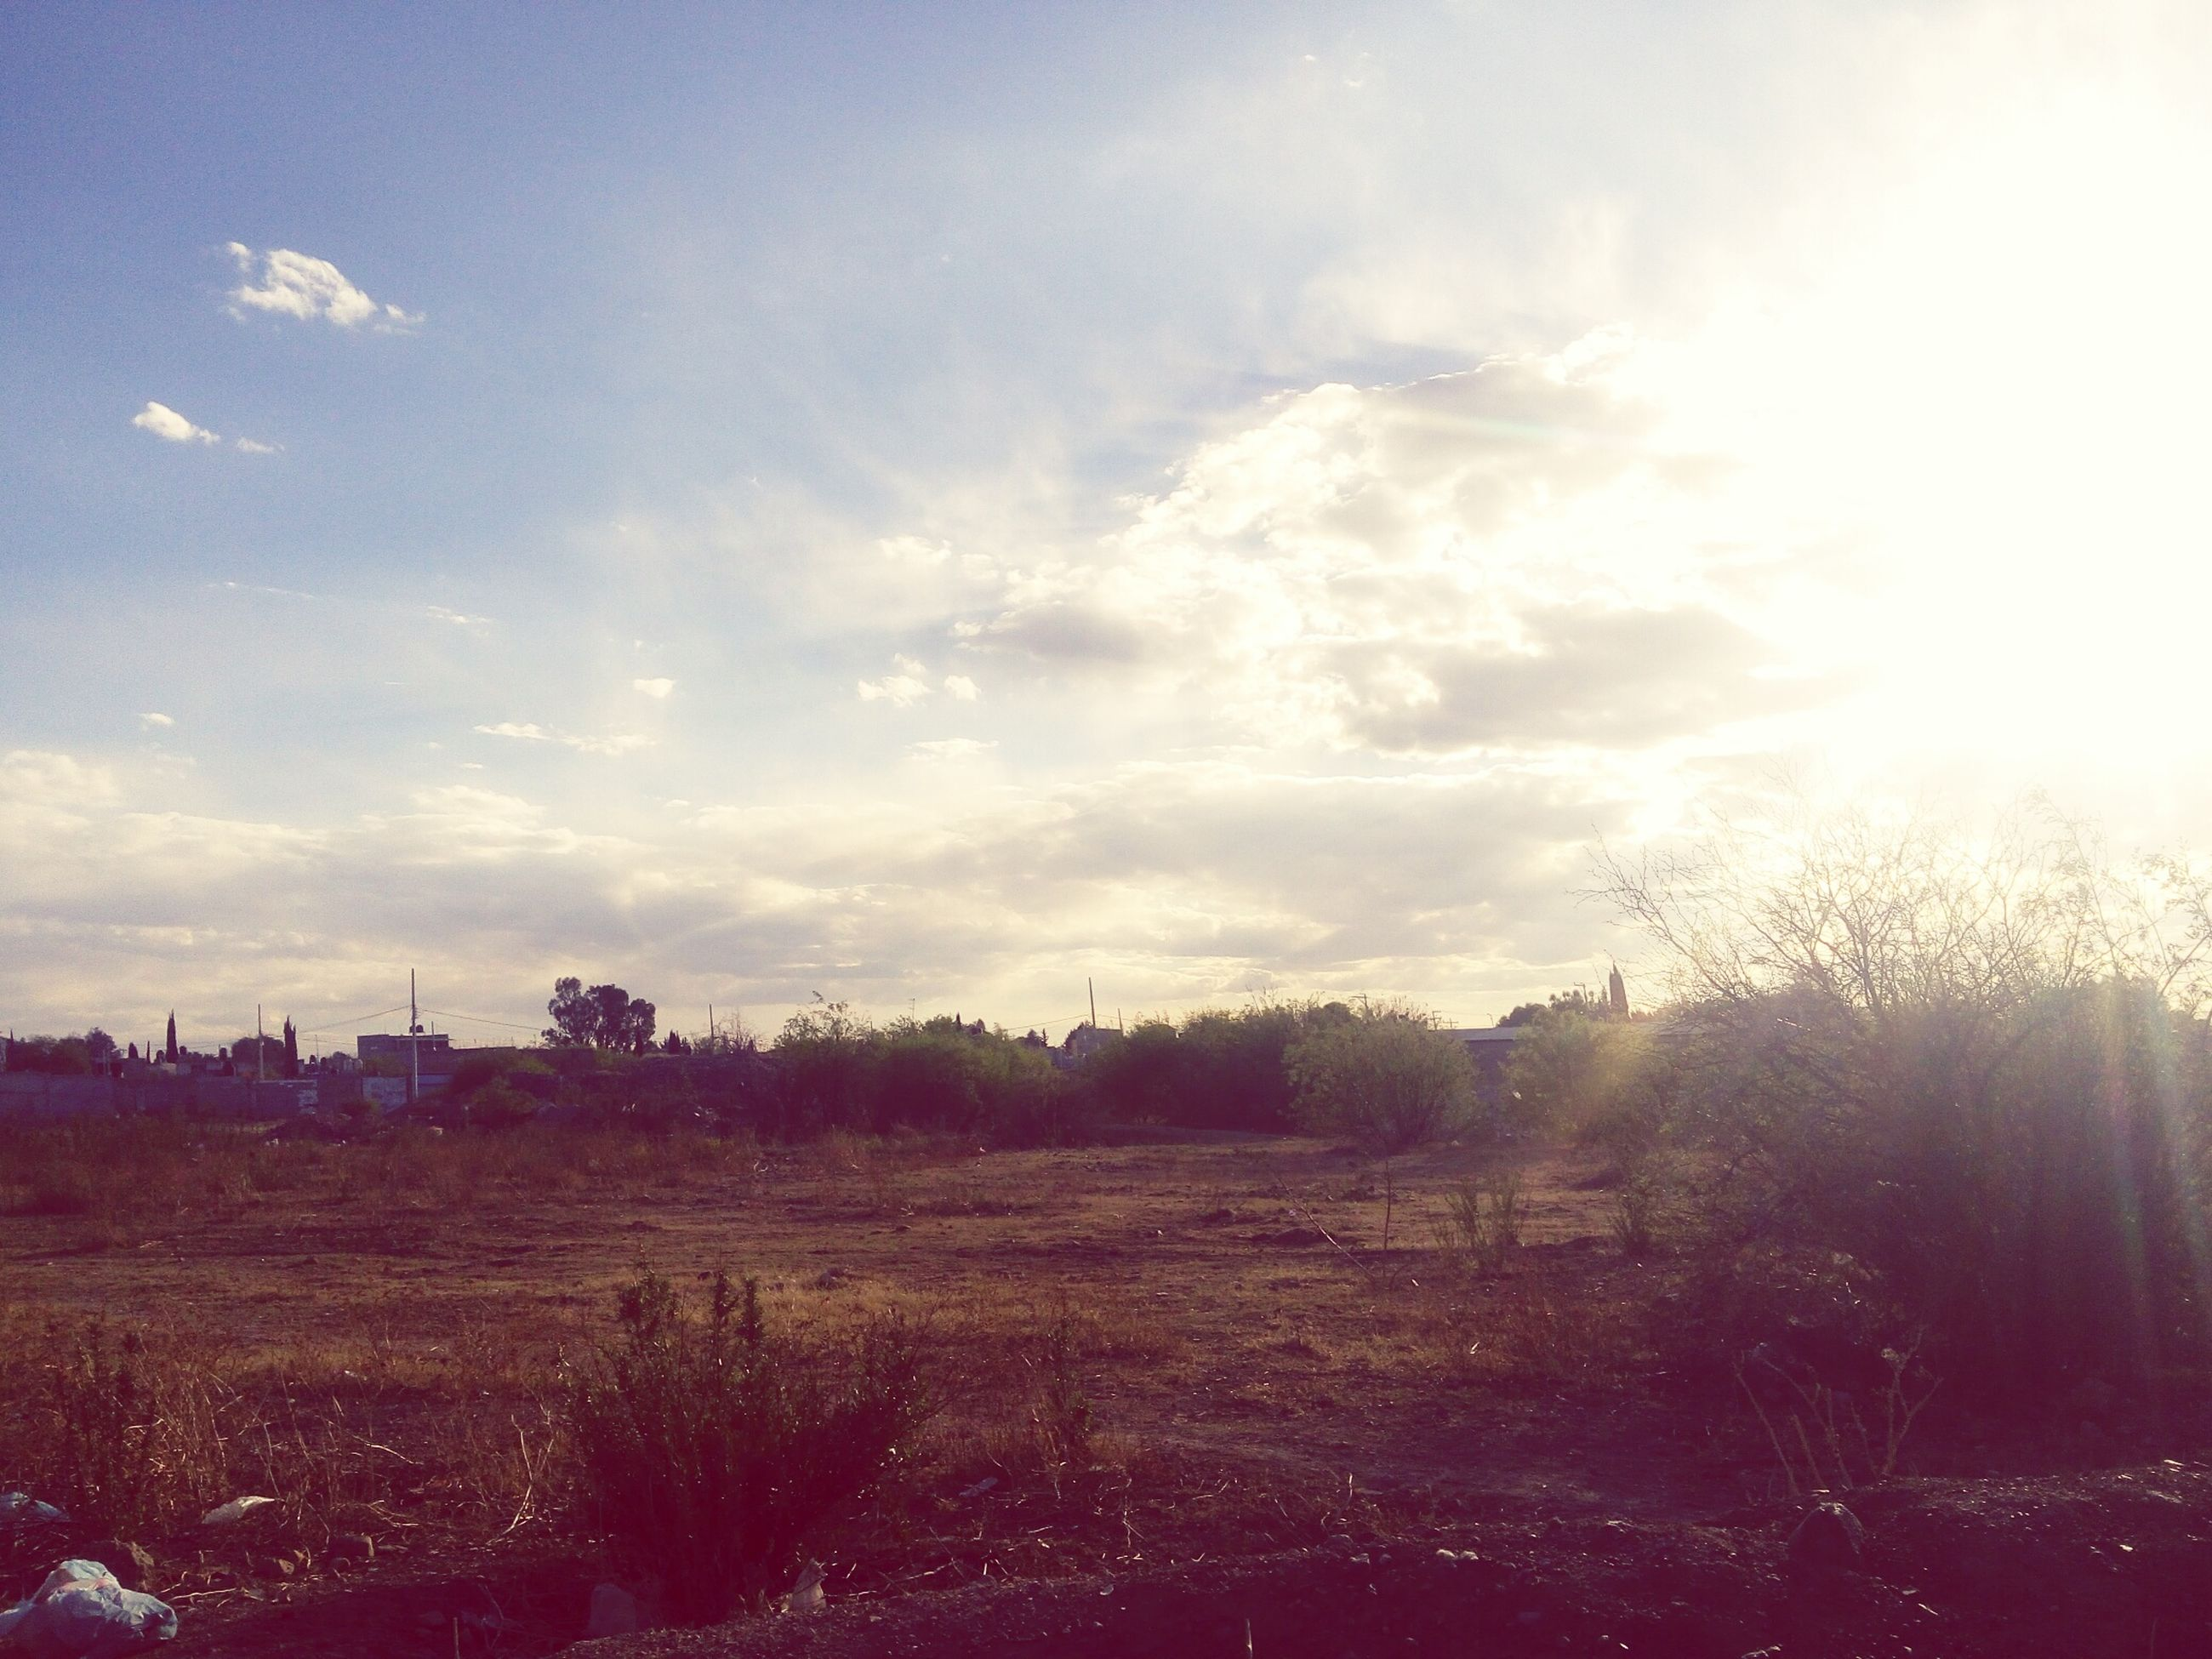 sky, nature, growth, tree, beauty in nature, tranquility, scenics, flower, tranquil scene, sunset, no people, outdoors, cloud - sky, landscape, day